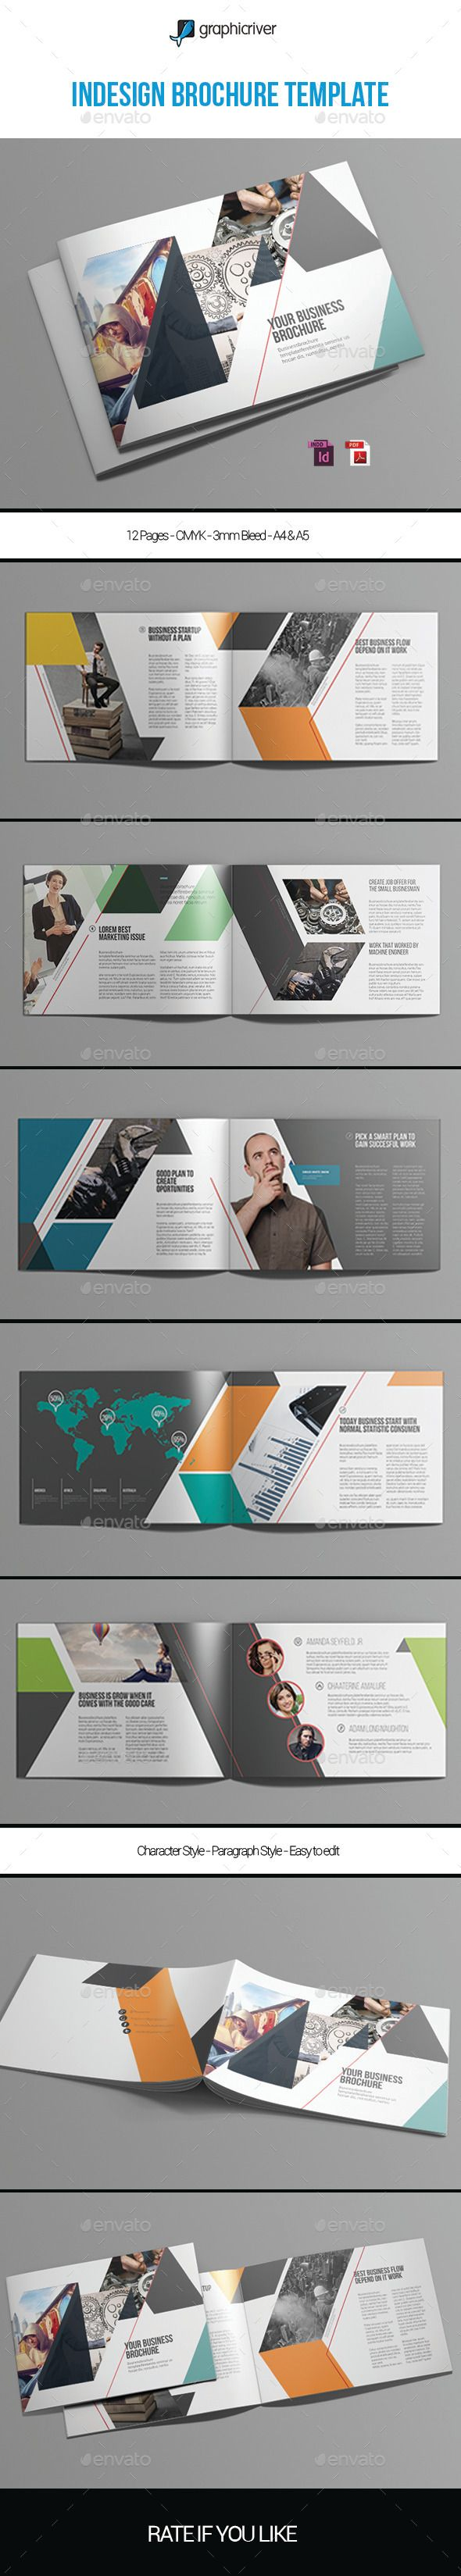 Indesign Brochure Template #design Download: http://graphicriver.net/item/indesign-brochure-template-vol1/12614358?ref=ksioks